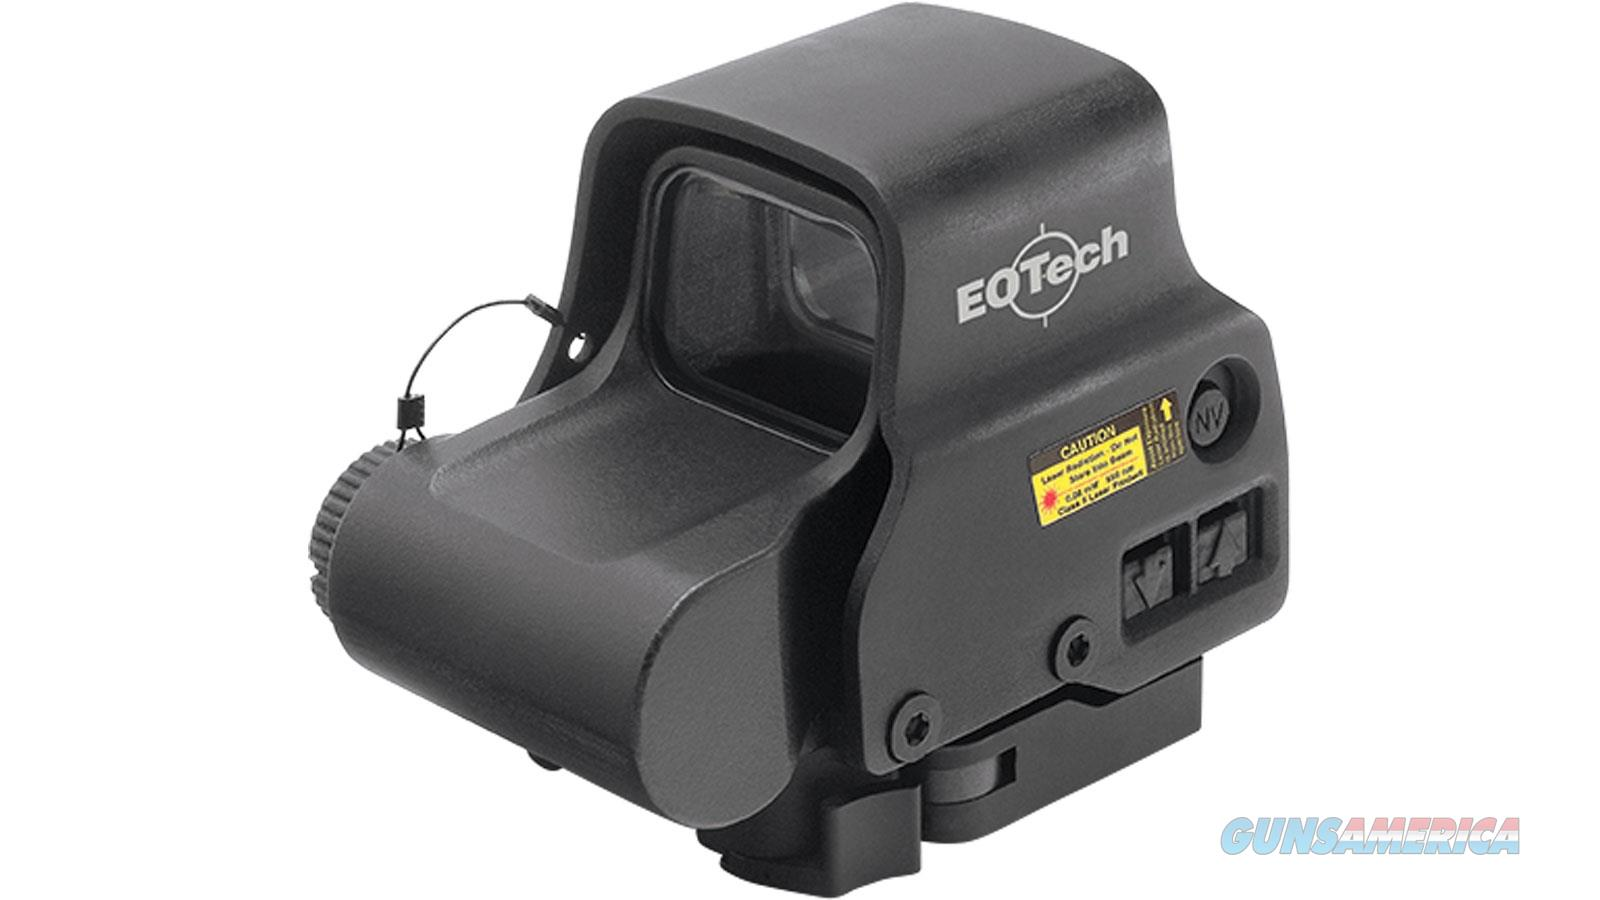 Eotech L3 Communication Exps Cr123 Sb Nv Thrlvr EXPS3-0  Non-Guns > Iron/Metal/Peep Sights